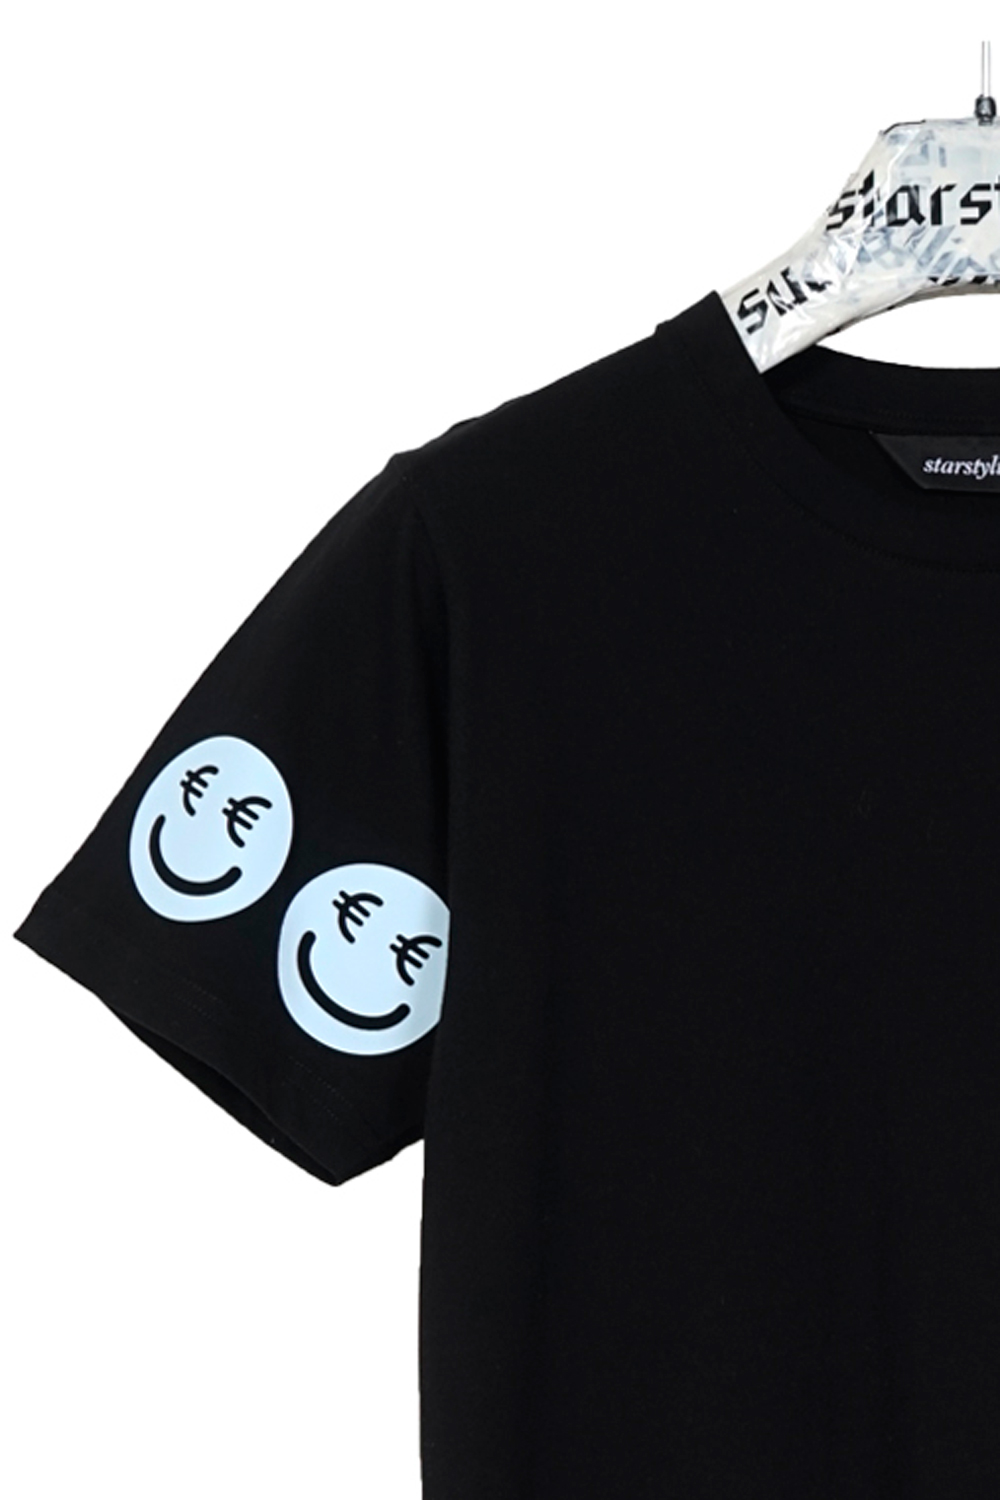 €Smiley Cropped T-Shirt - 1